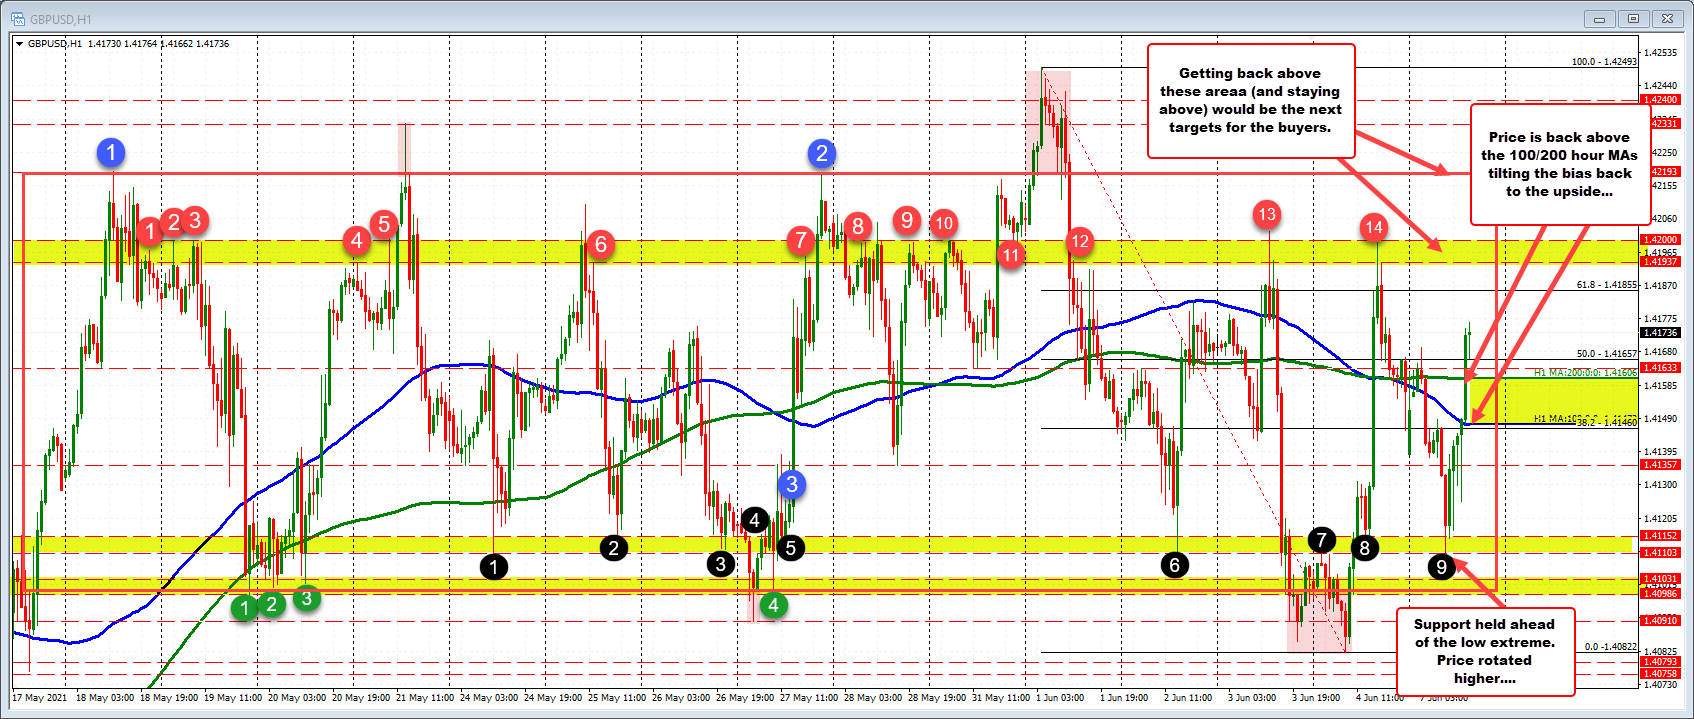 The move lower earlier in the day found support at swing area